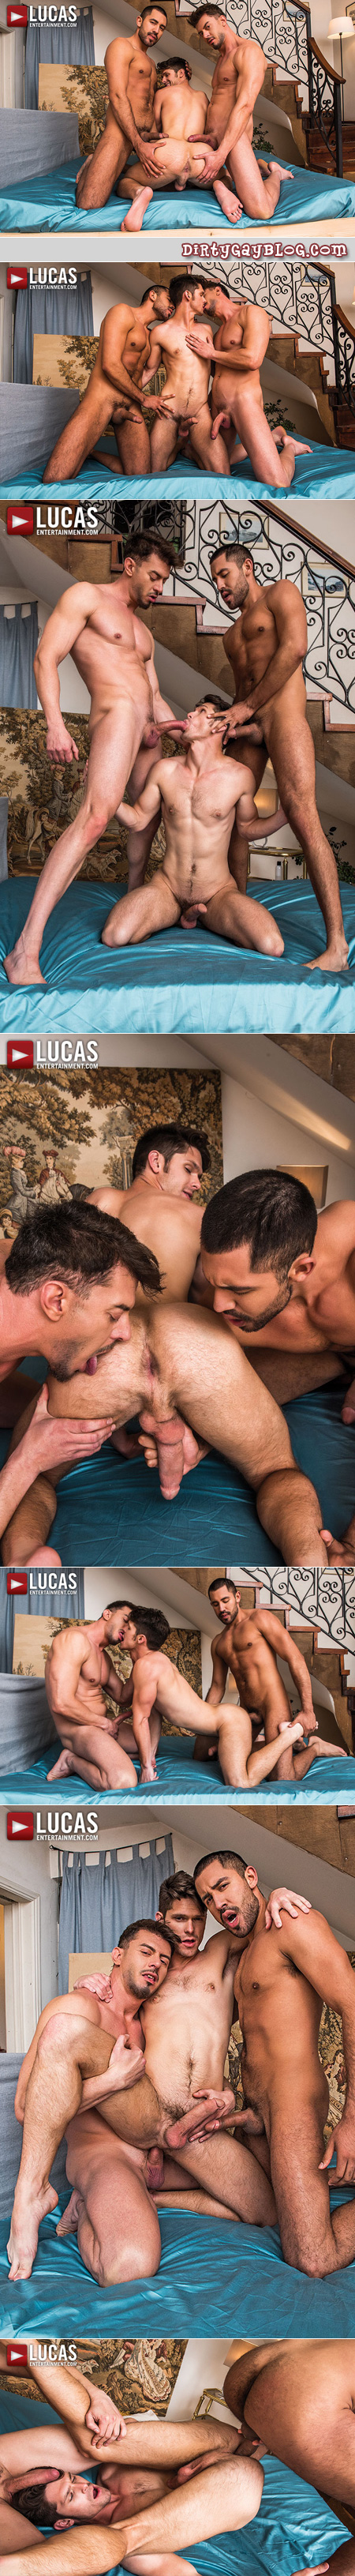 Two guys spit roast a third guy bareback with their big uncut cock.